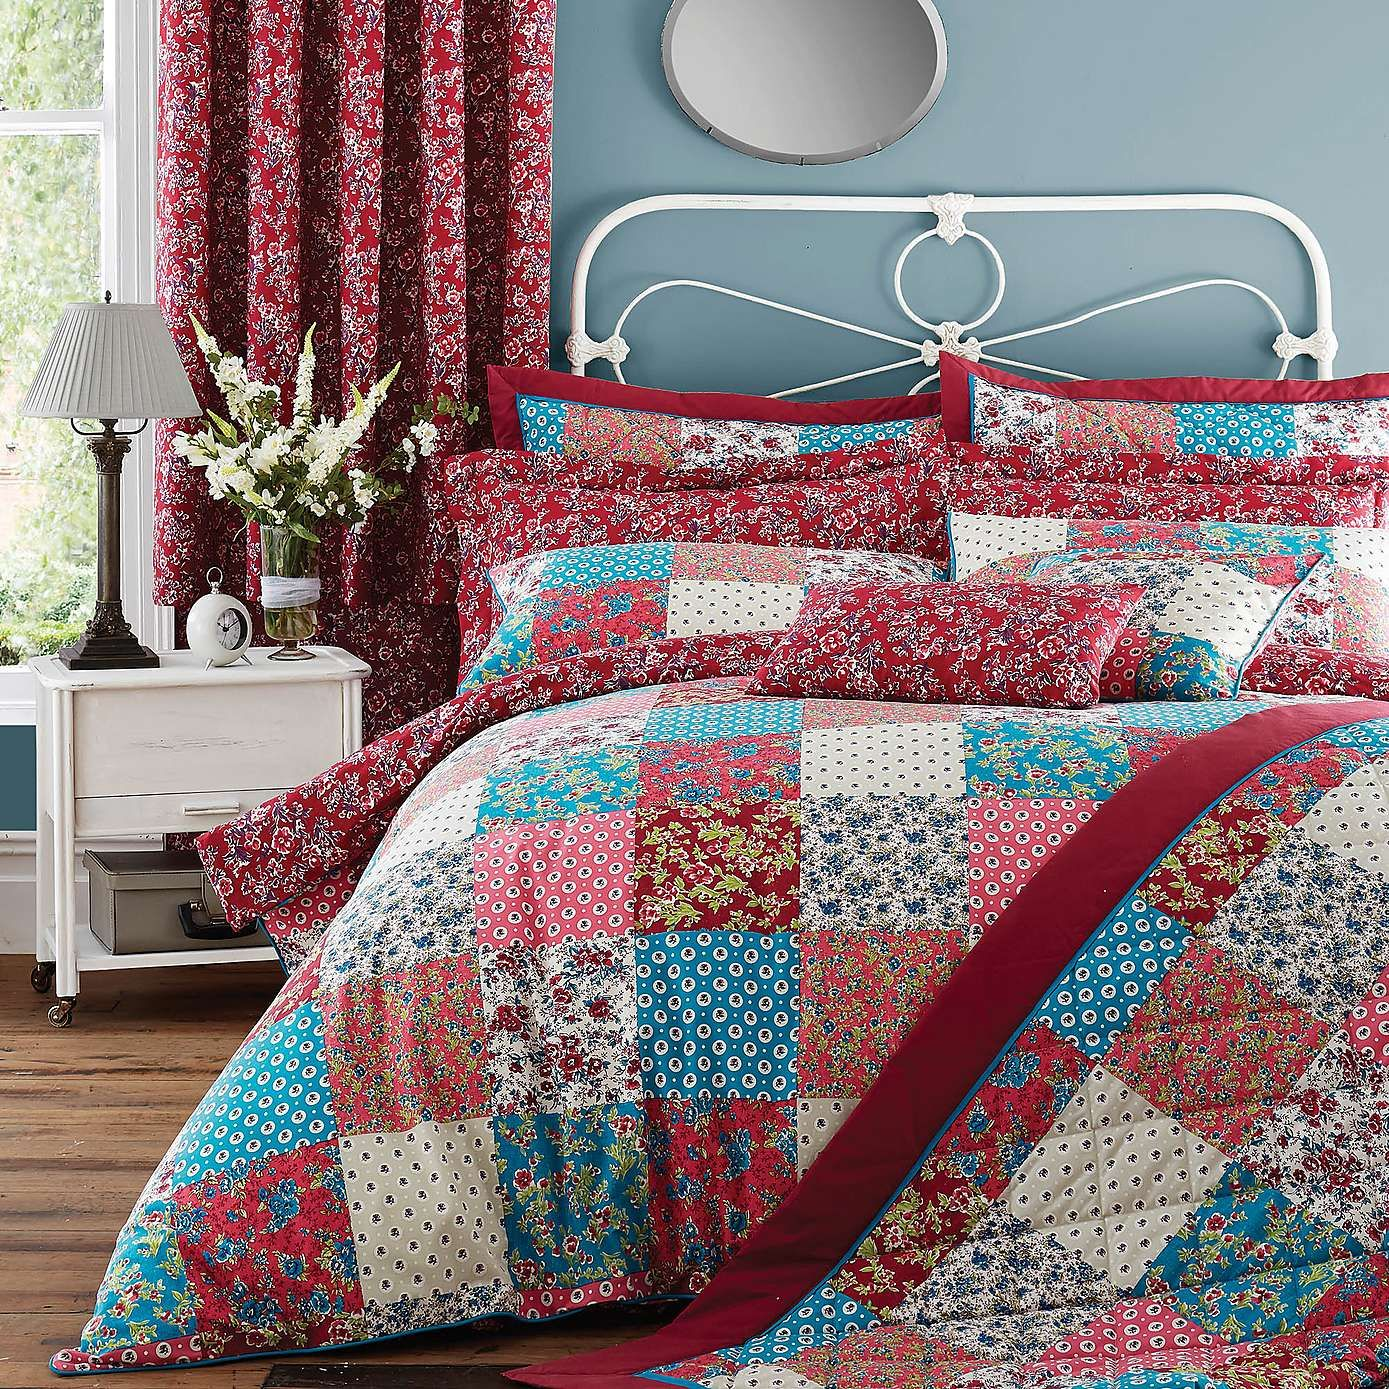 strawberry piece products set cover floral duvet quilt cal king field patchwork sweet cotton tache